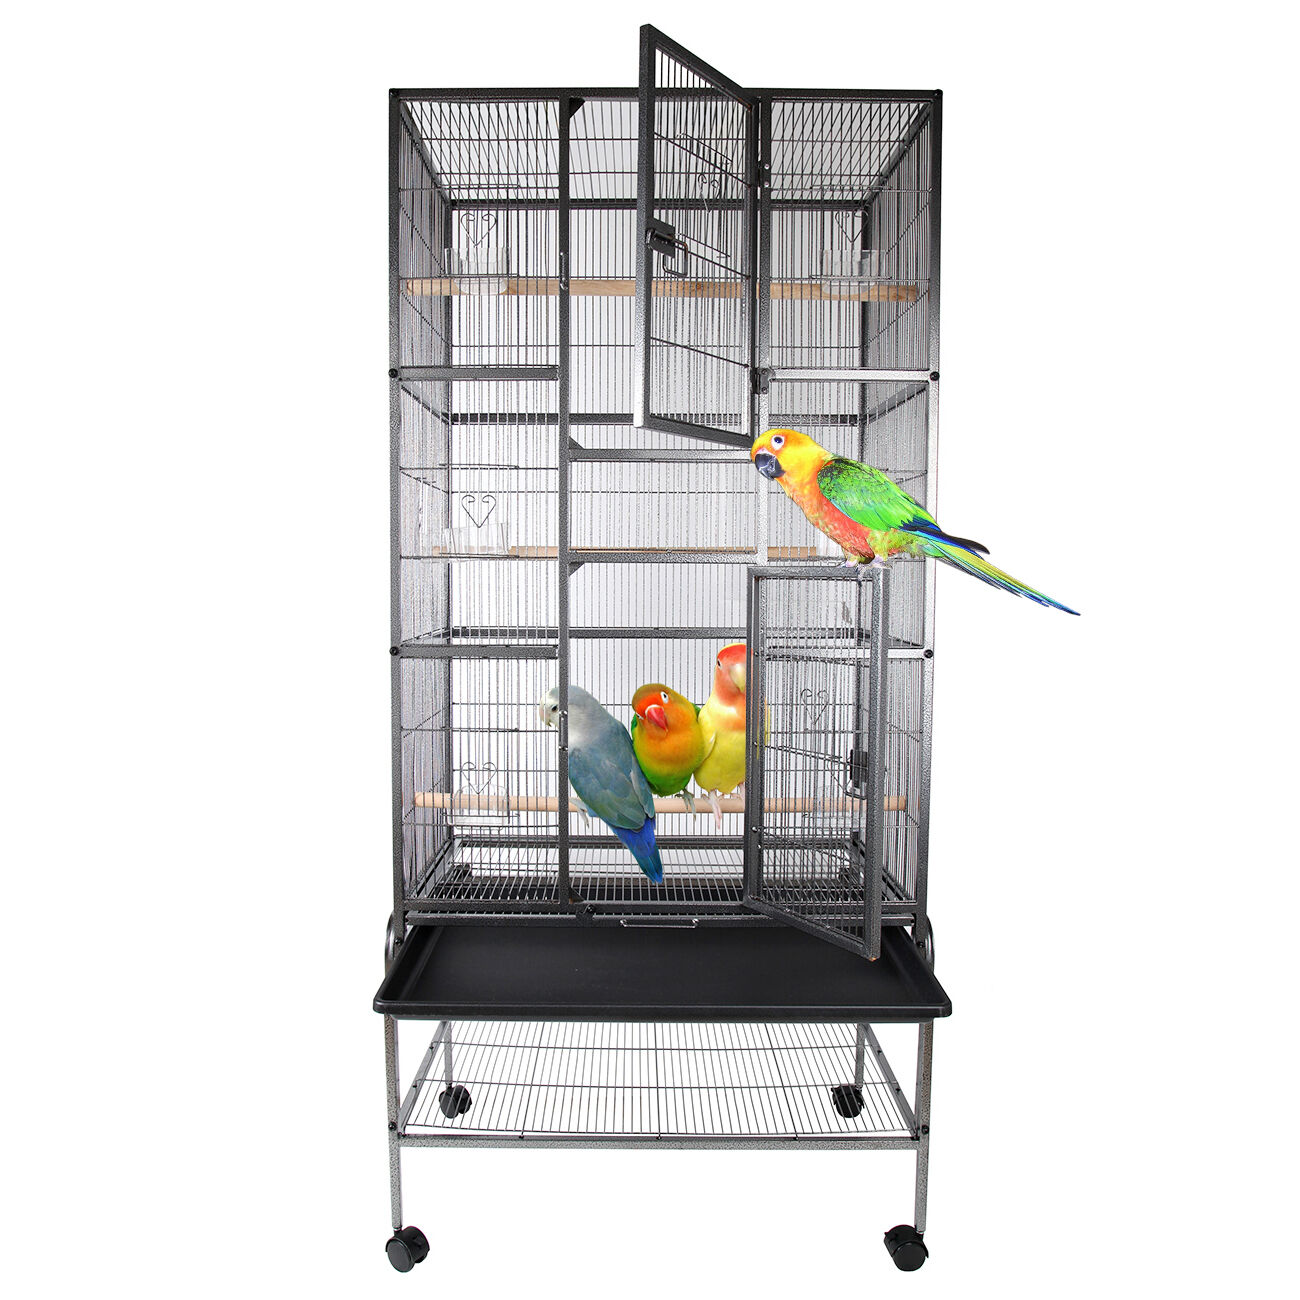 grande voli re cage oiseaux canaries perruches perroquets metal d 39 levage eur 109 00. Black Bedroom Furniture Sets. Home Design Ideas